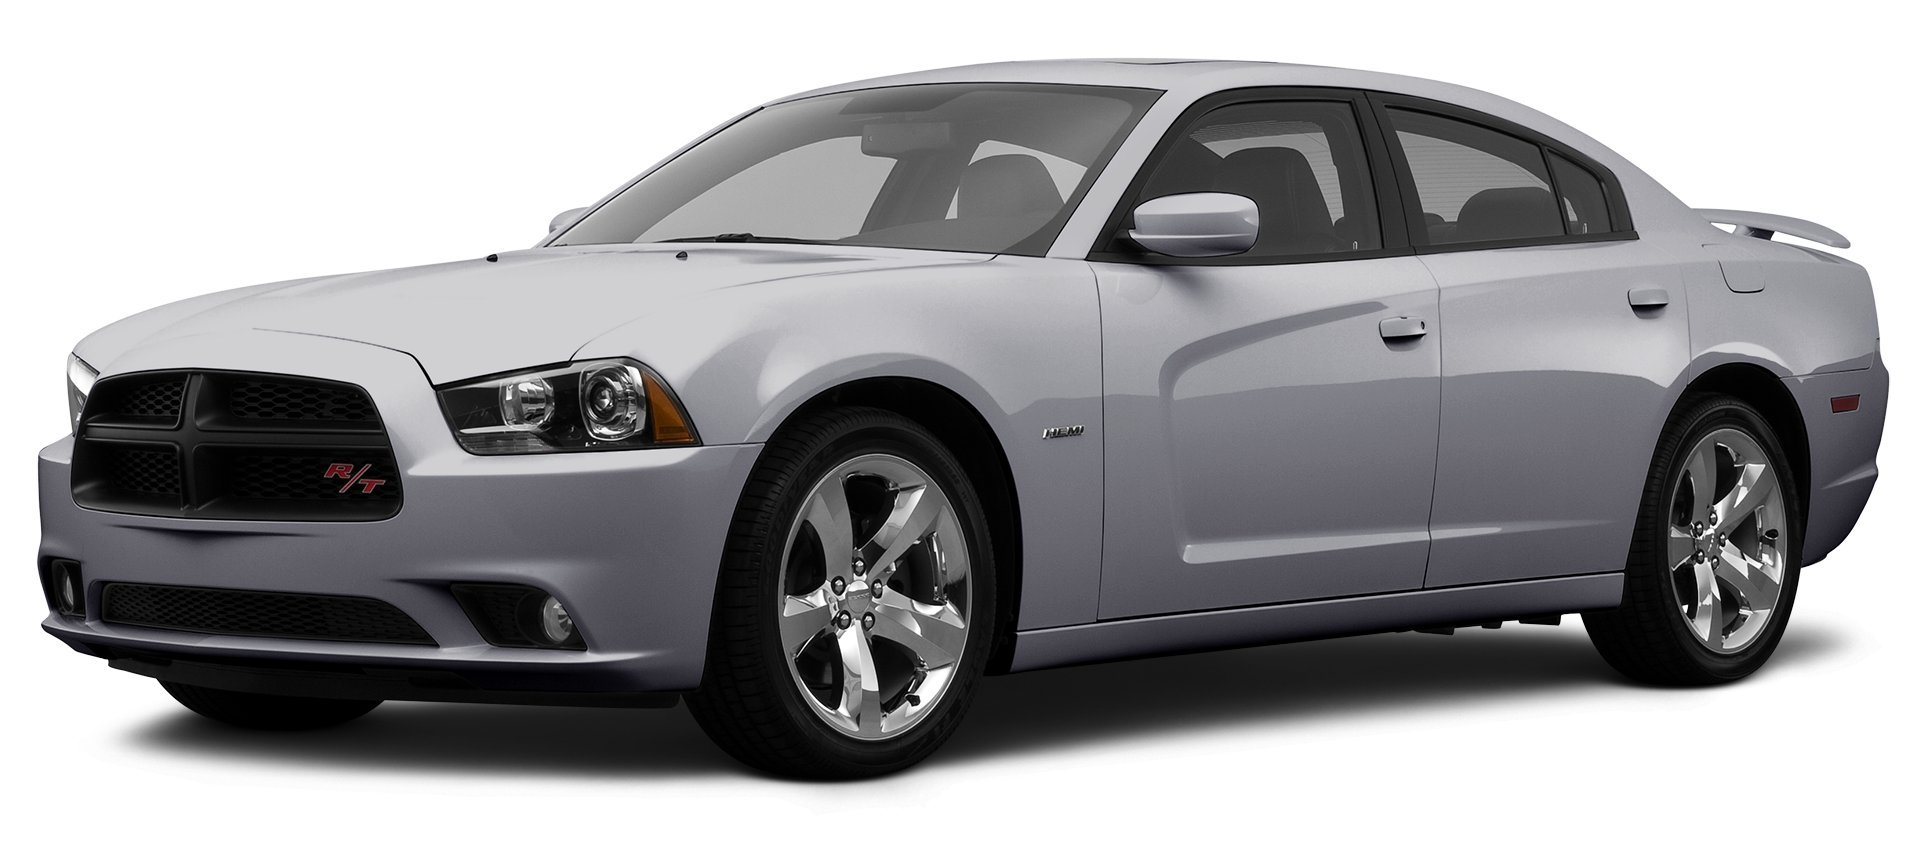 2013 dodge charger reviews images and specs vehicles. Black Bedroom Furniture Sets. Home Design Ideas